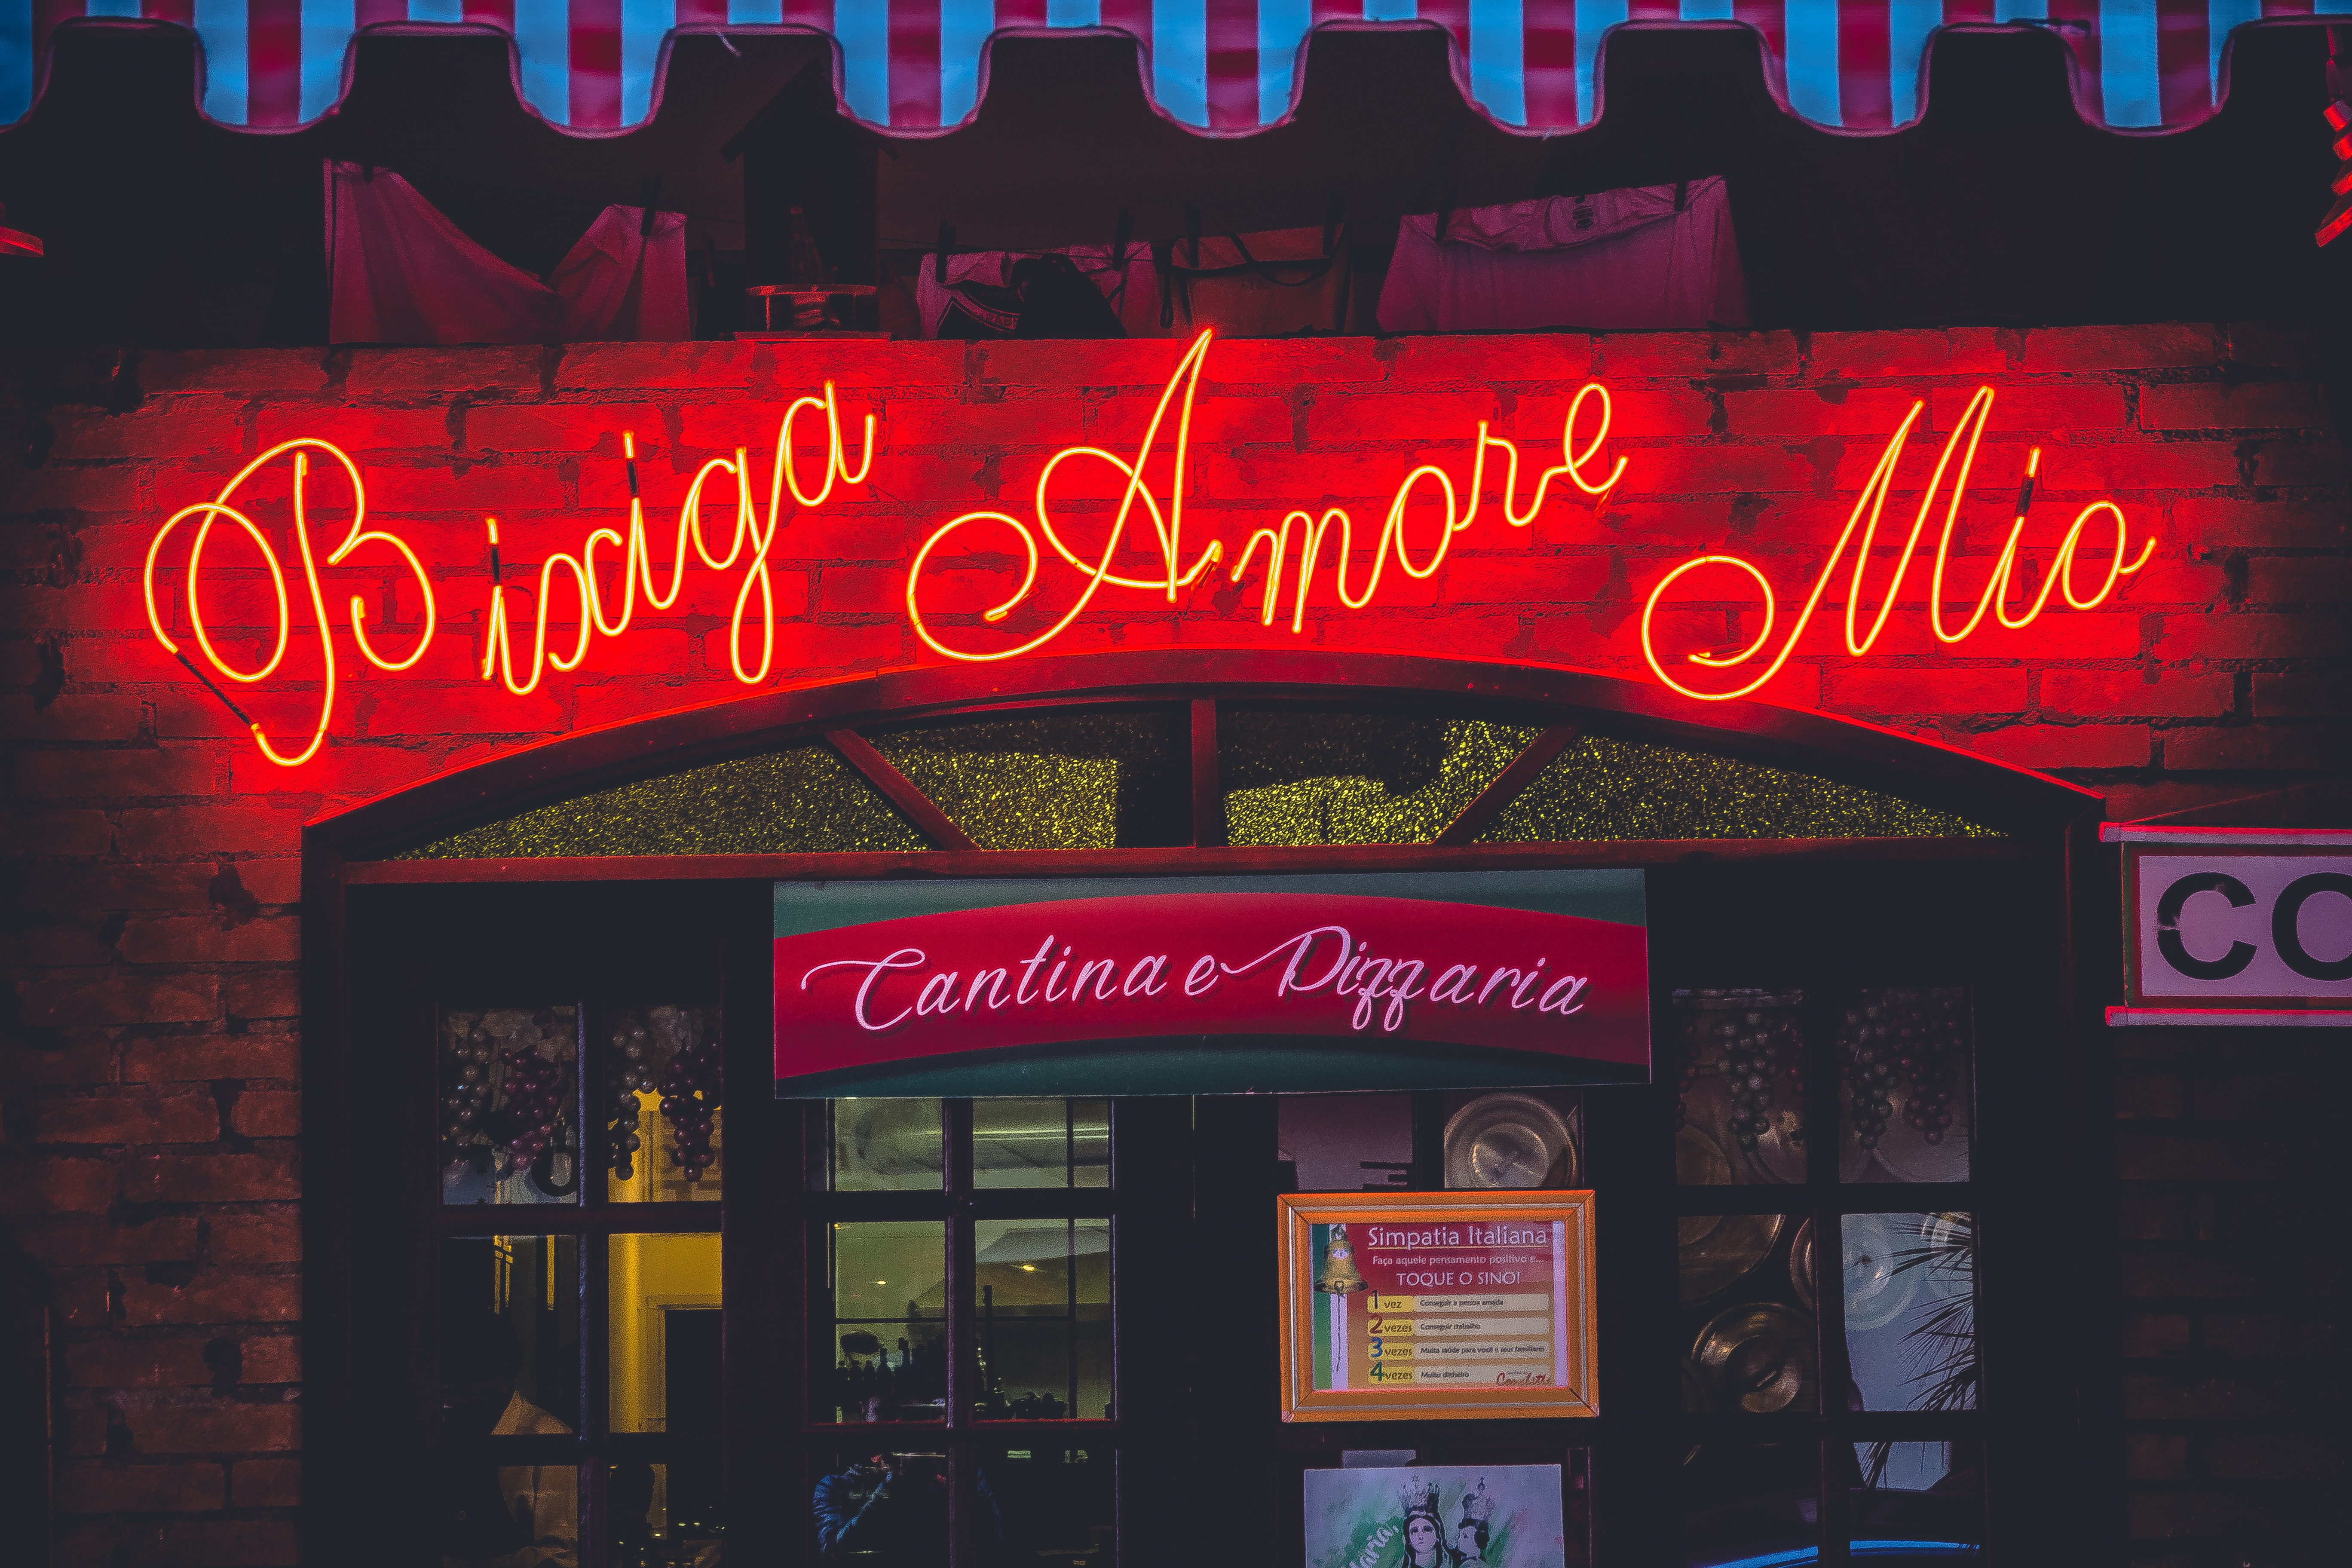 An Italian restaurant storefront with a red neon